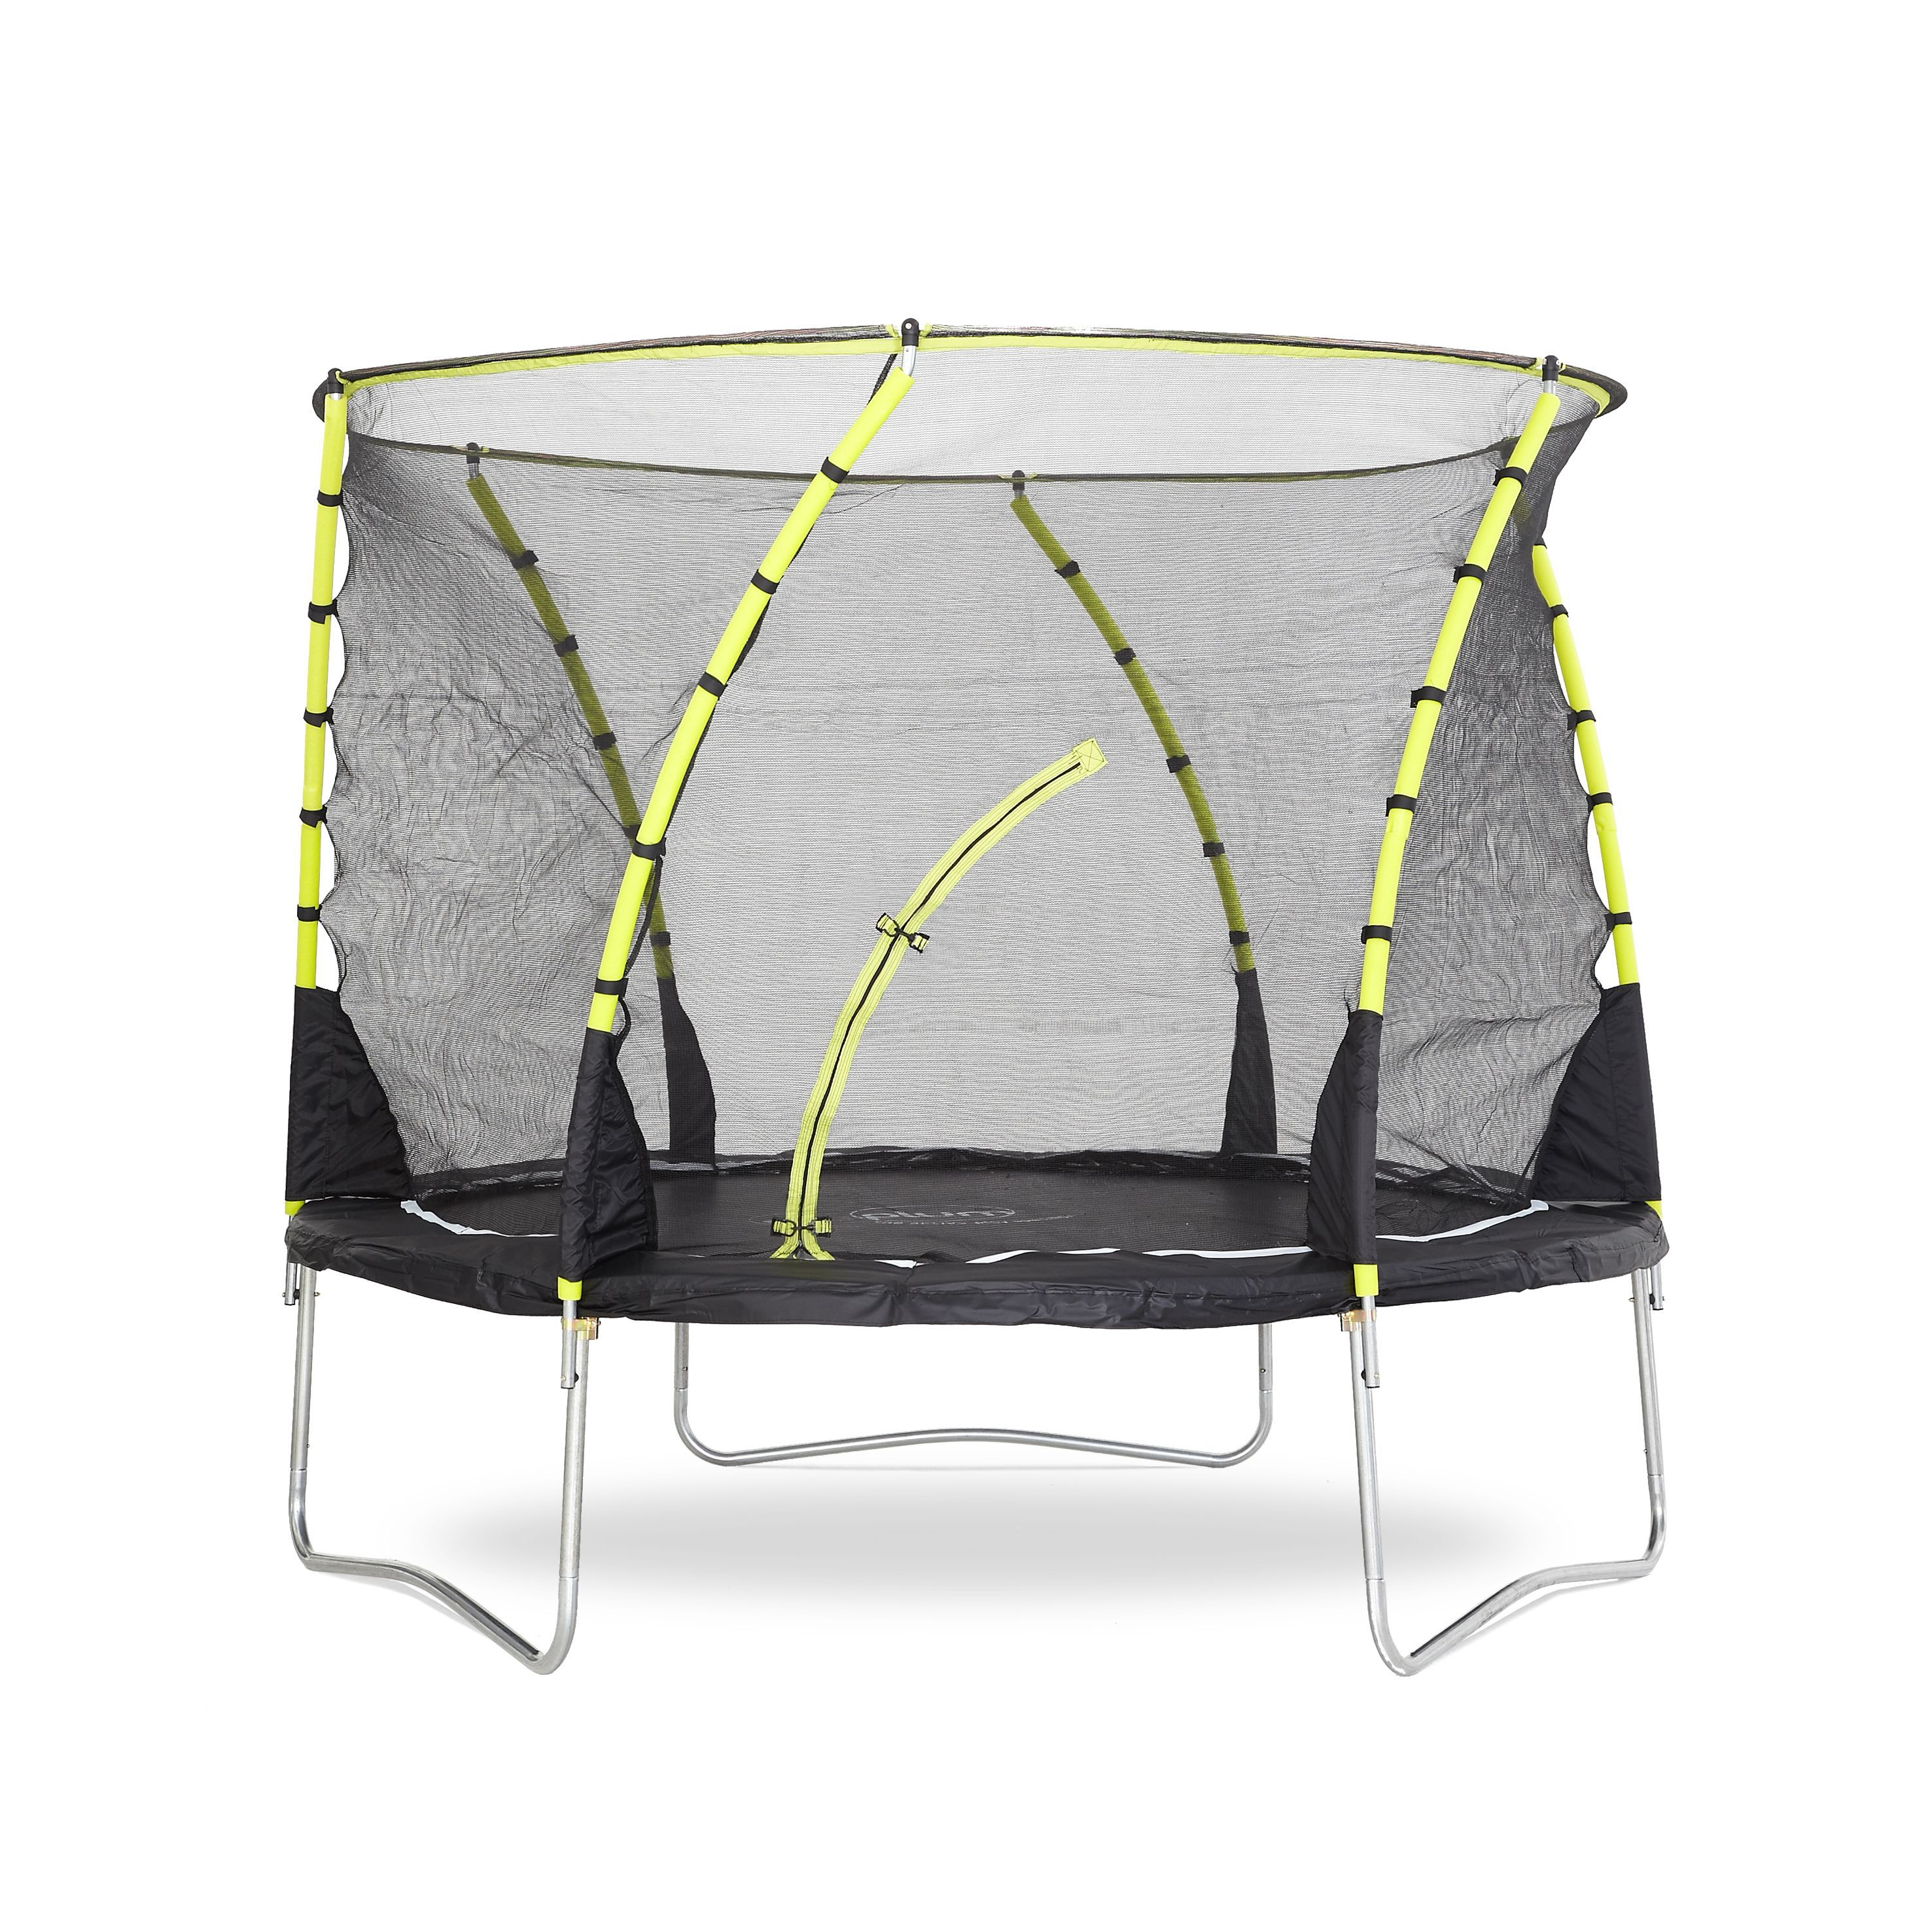 Trampoline Springs B Q: Plum Whirlwind Black & Green 10 Ft Trampoline & Enclosure